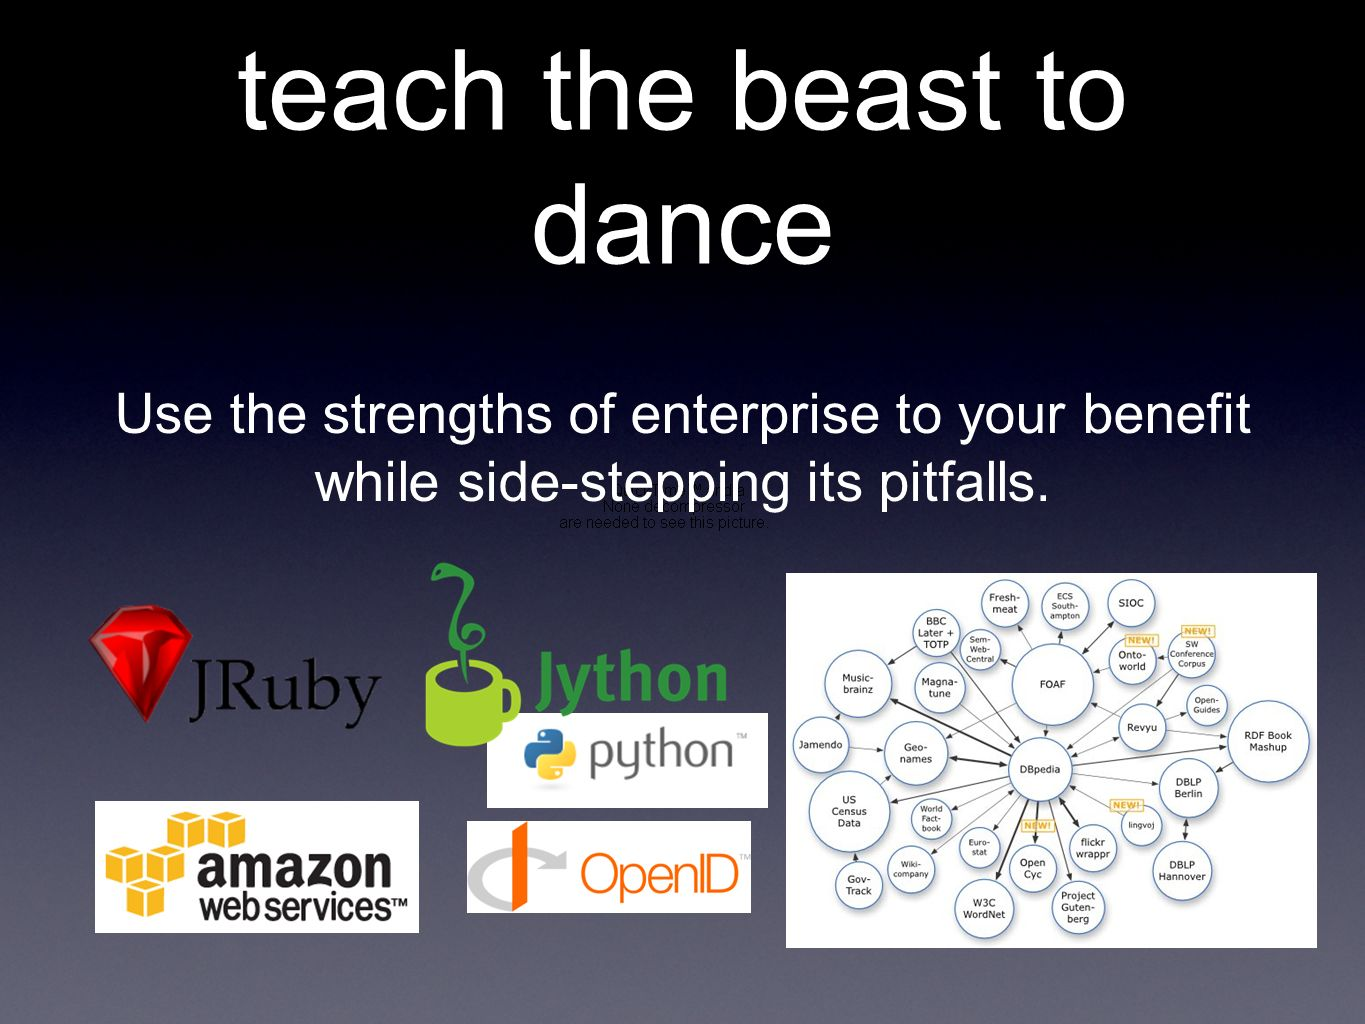 teach the beast to dance Use the strengths of enterprise to your benefit while side-stepping its pitfalls.